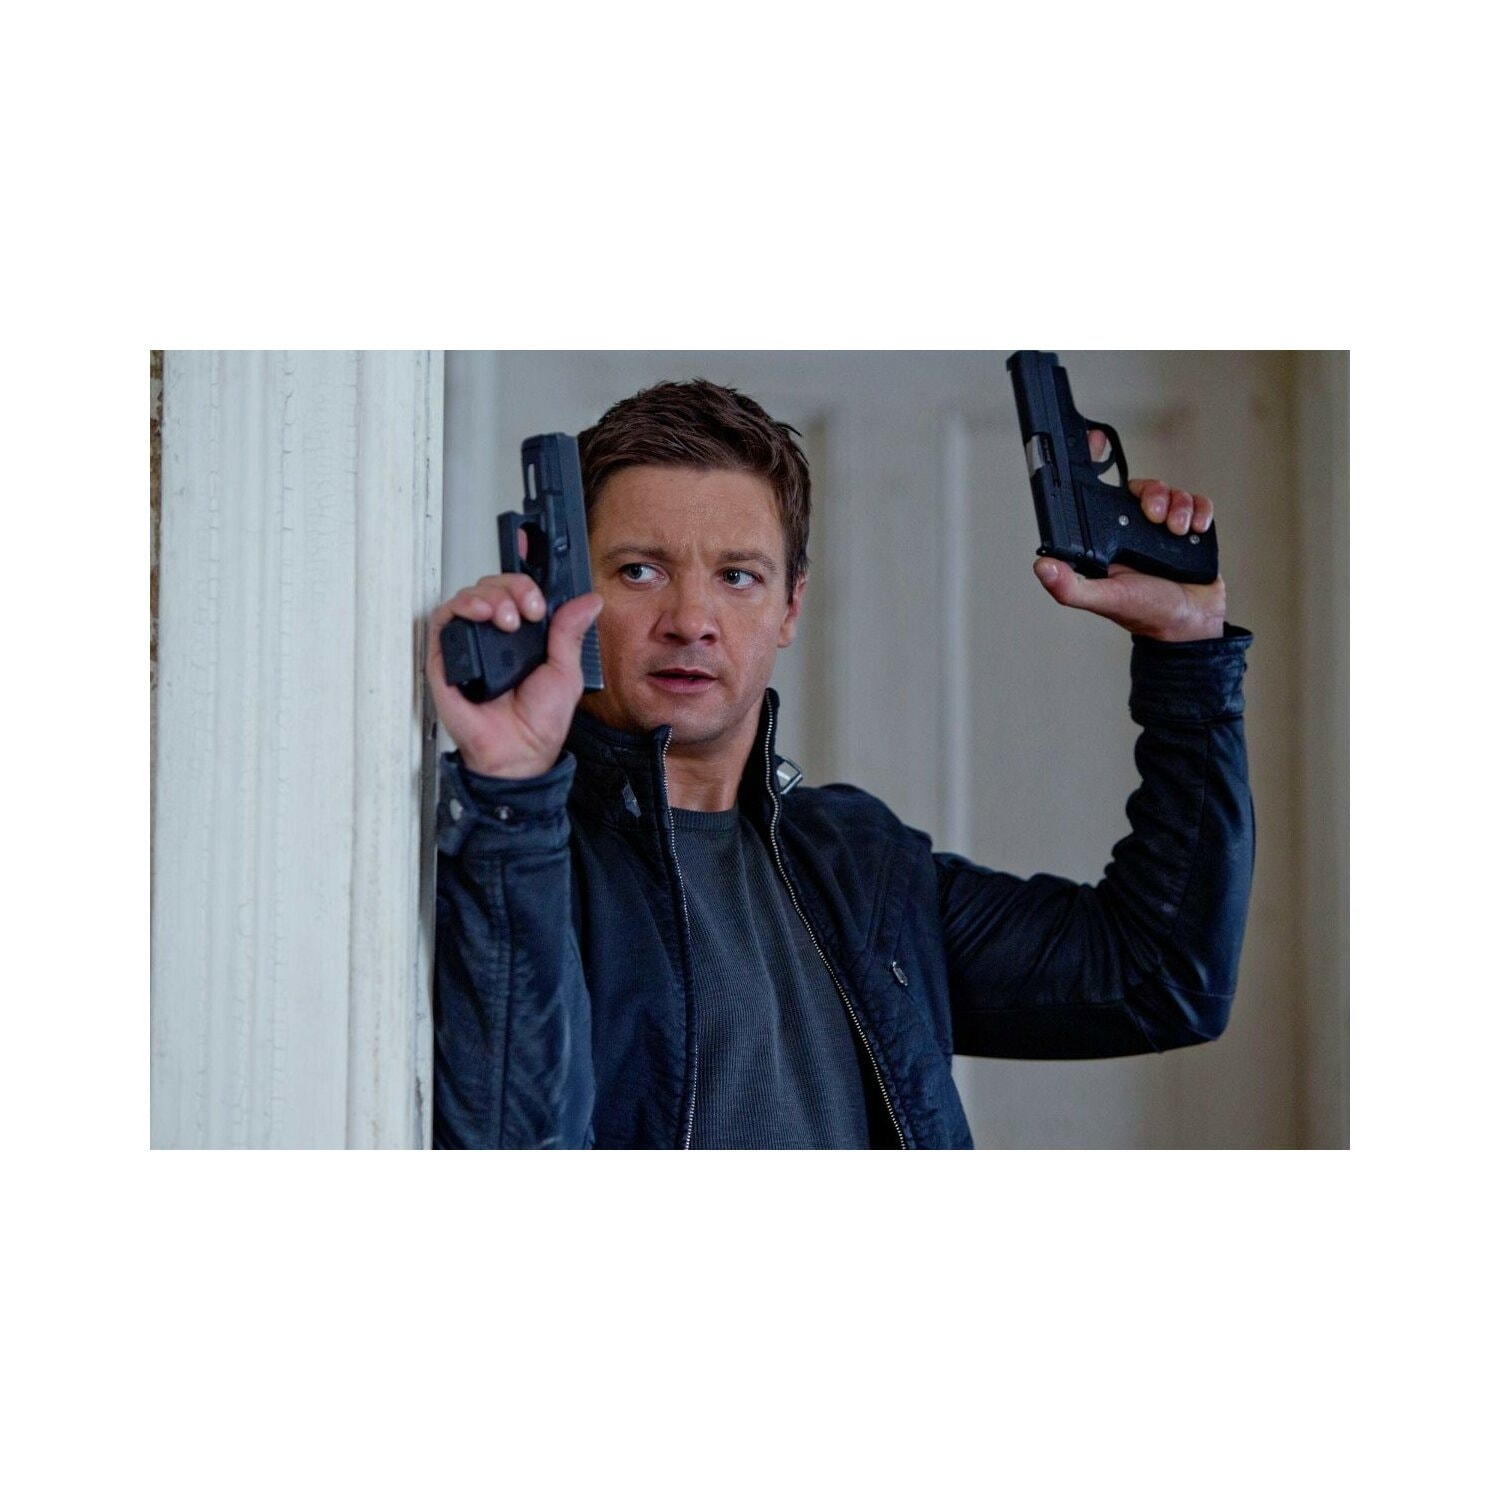 Film TIM FILM STUDIO Dziedzictwo Bourne'a The Bourne Legacy